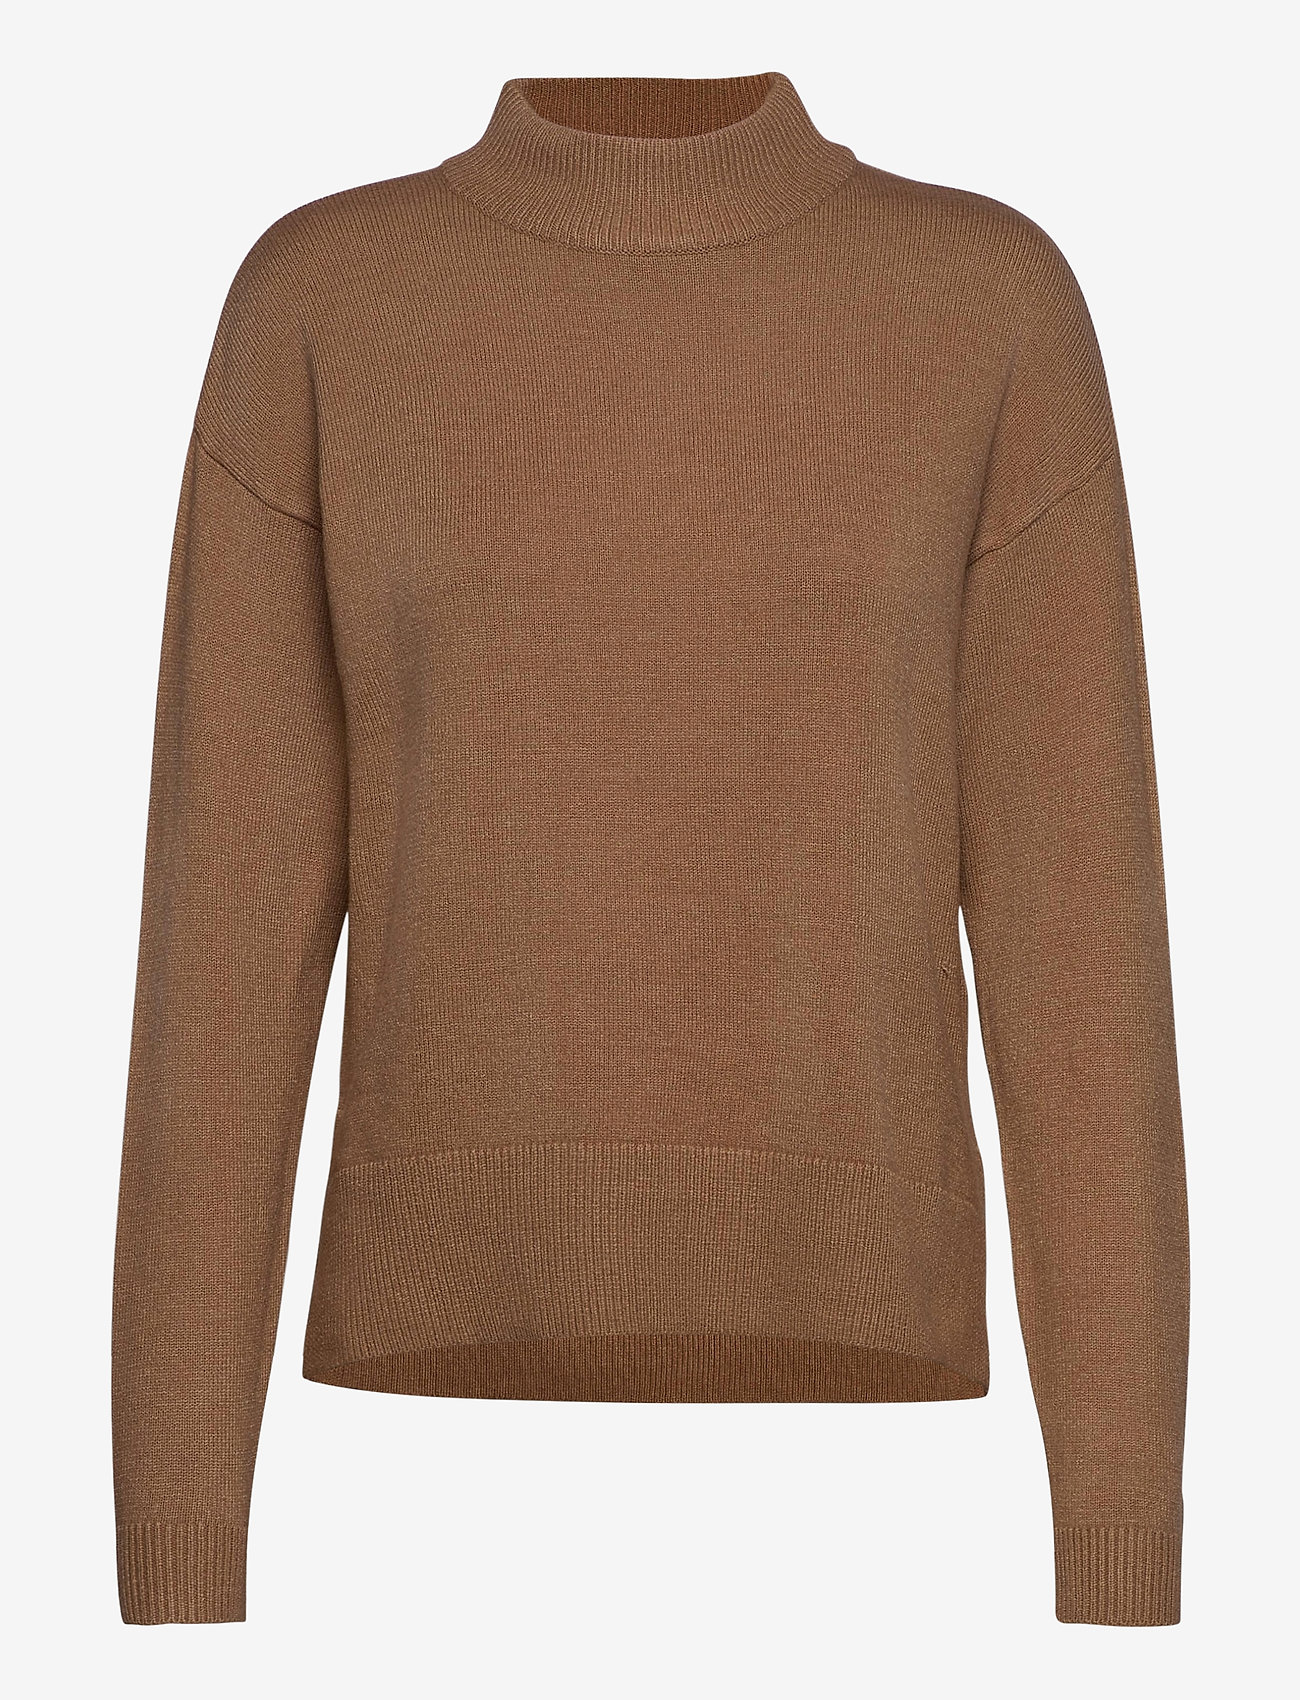 b.young - BYNONINA TURTLE - KNIT - turtlenecks - mel. golden sand - 0